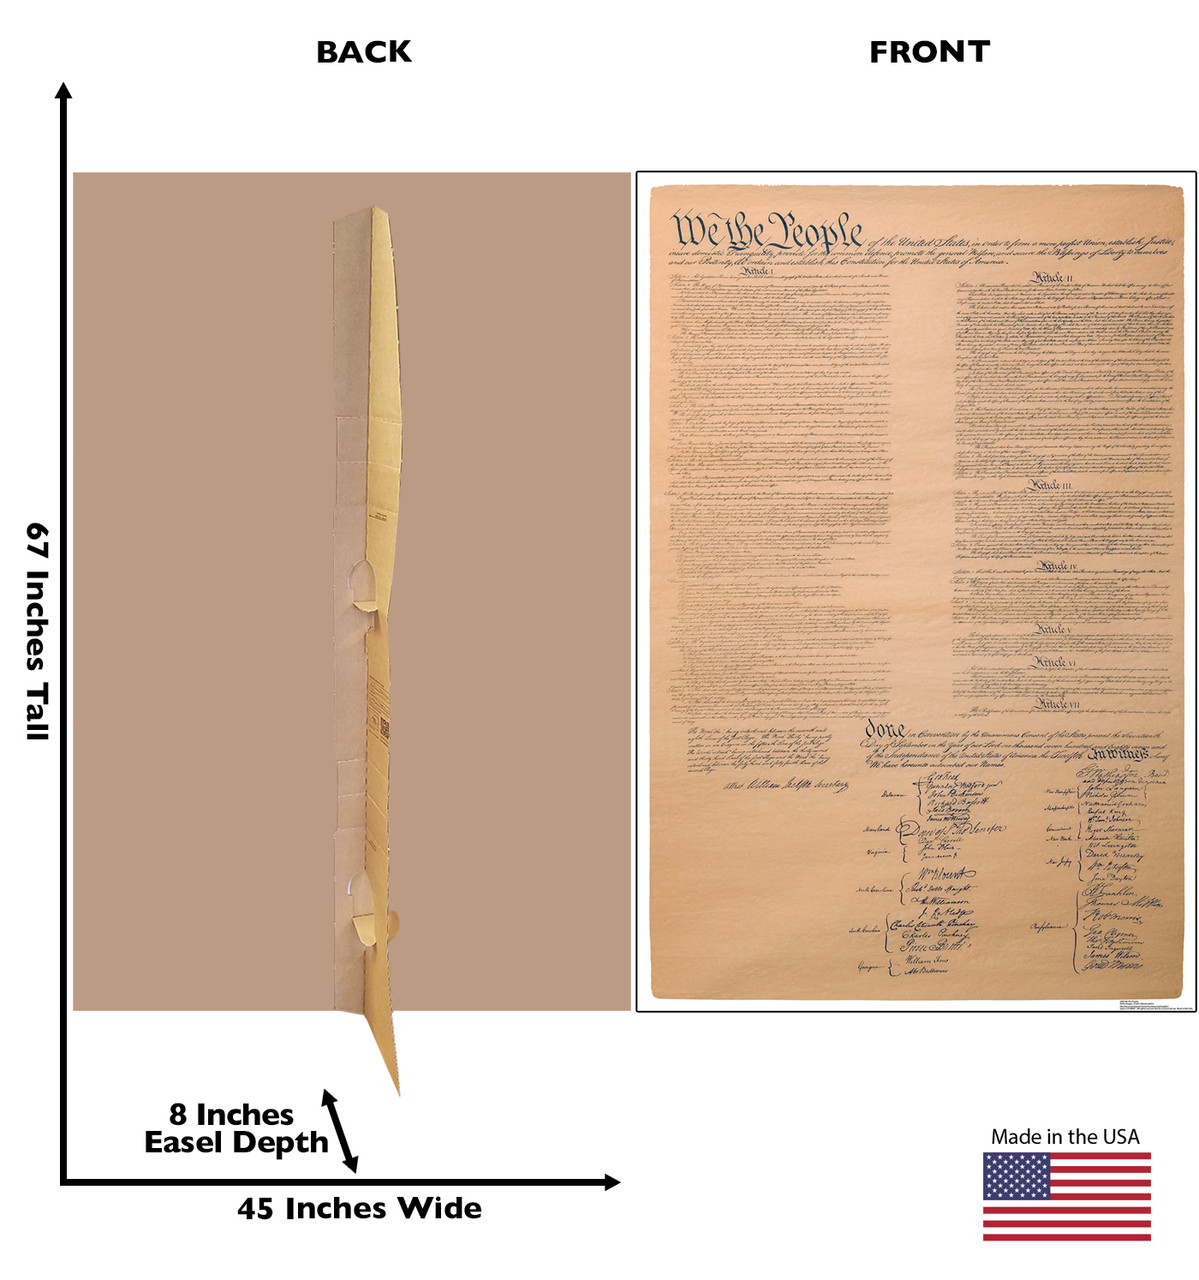 Life-size cardboard standee of We The People, US Constitution with back and front dimensions.